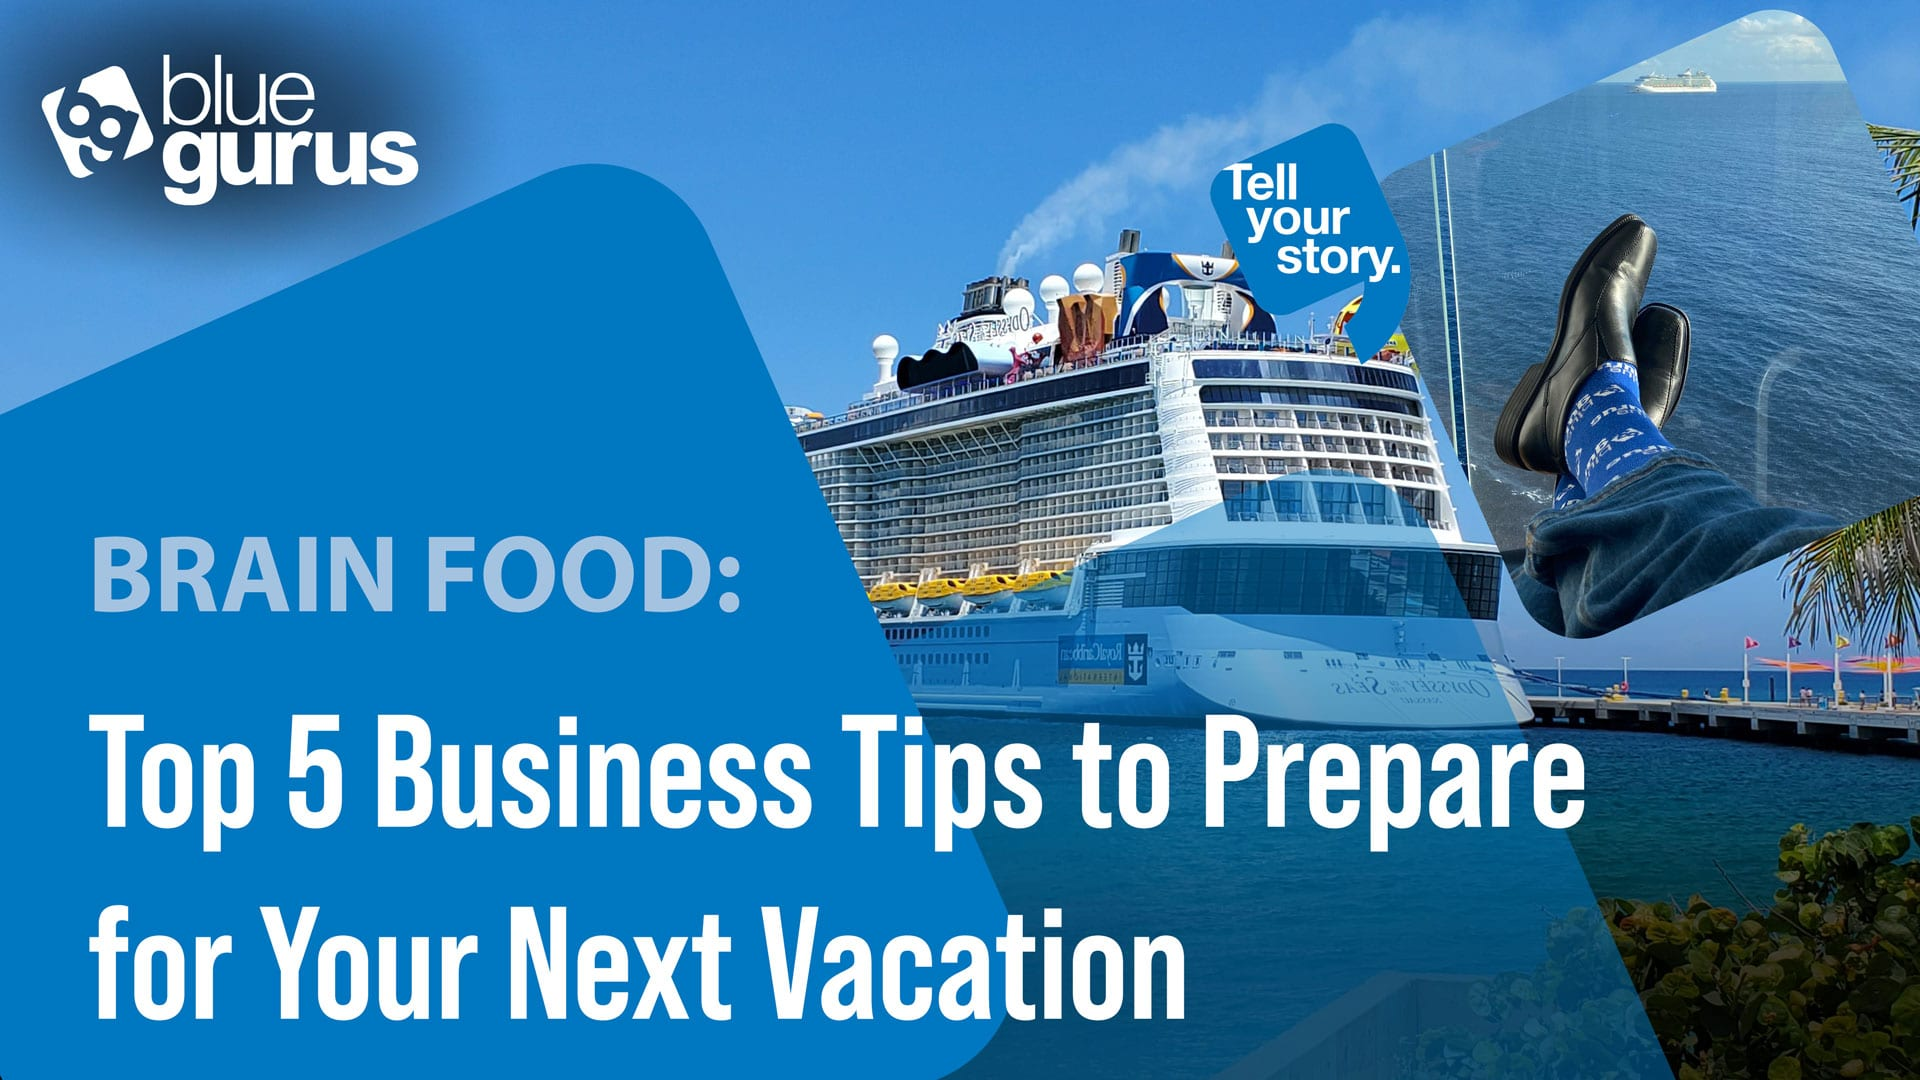 Top 5 Business Tips to Prepare for Your Next Vacation